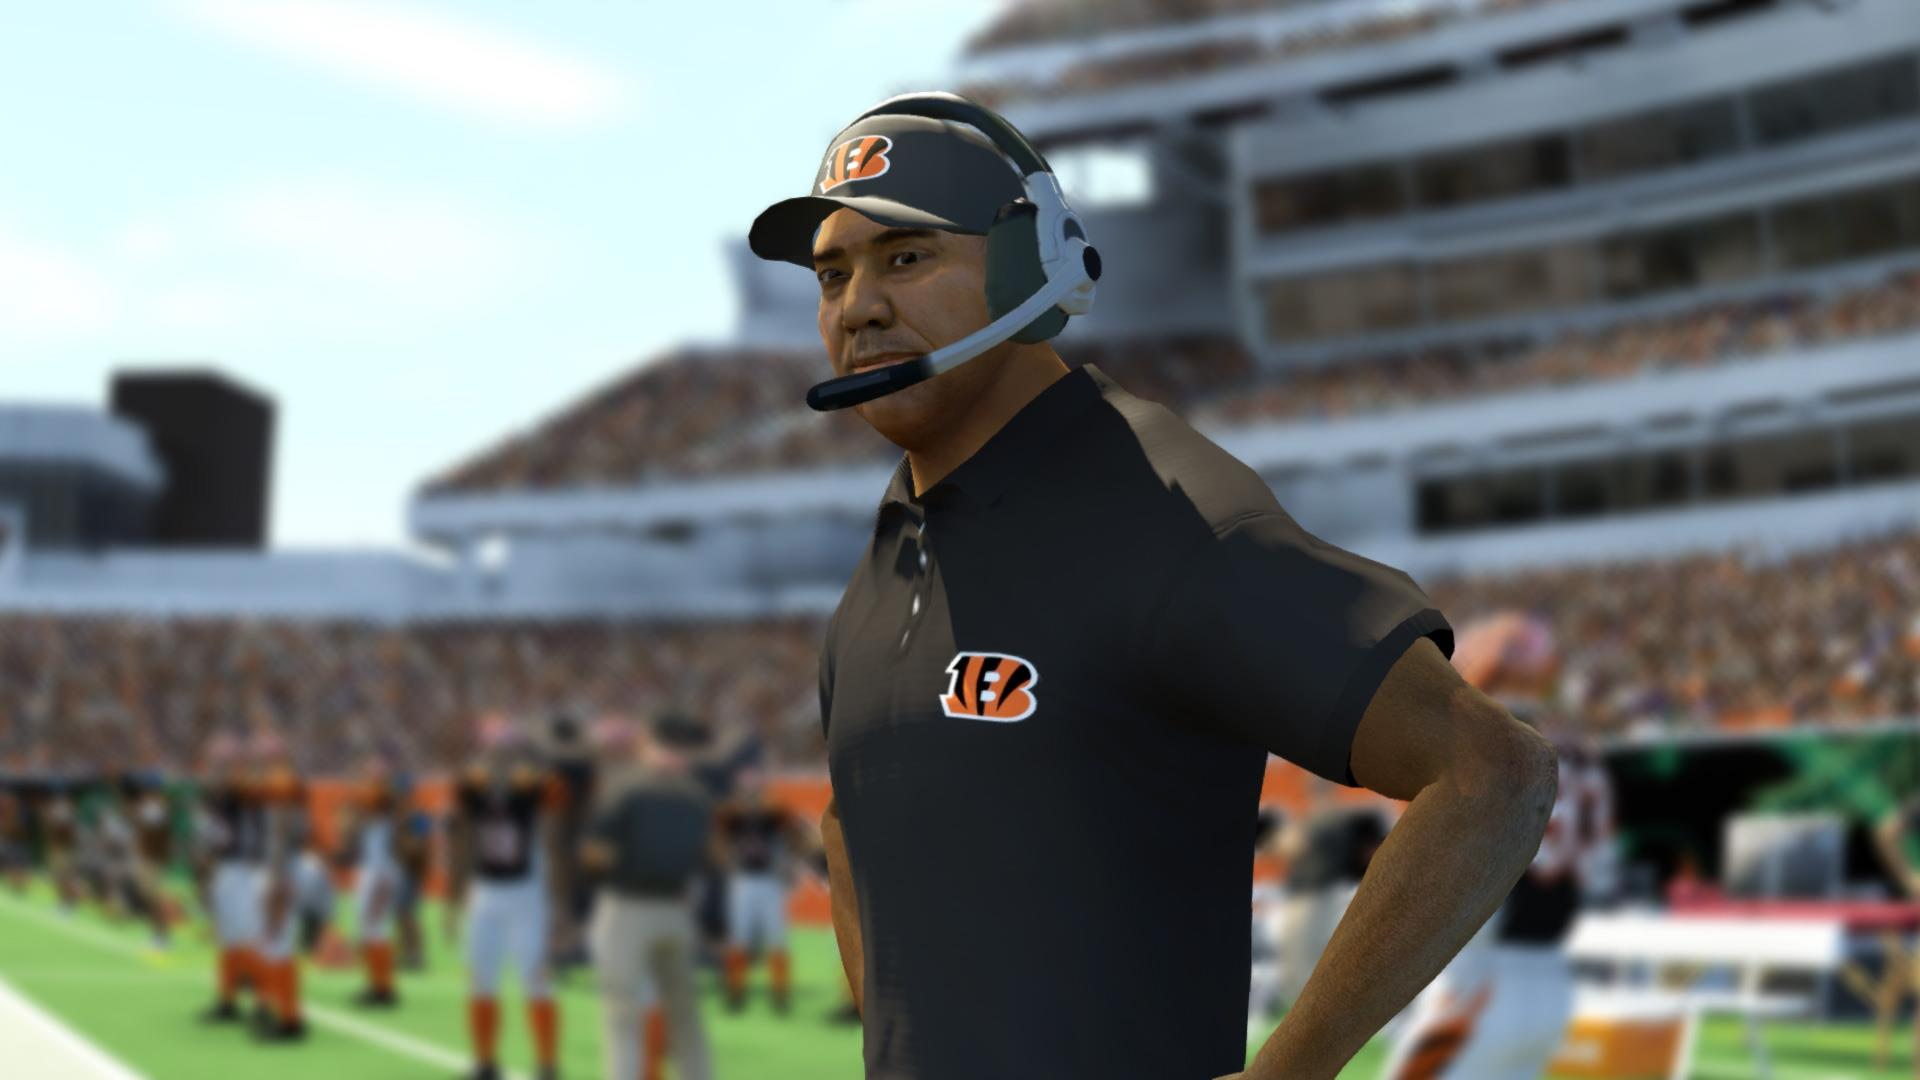 Marvin Lewis Legacy Award in Madden NFL 25